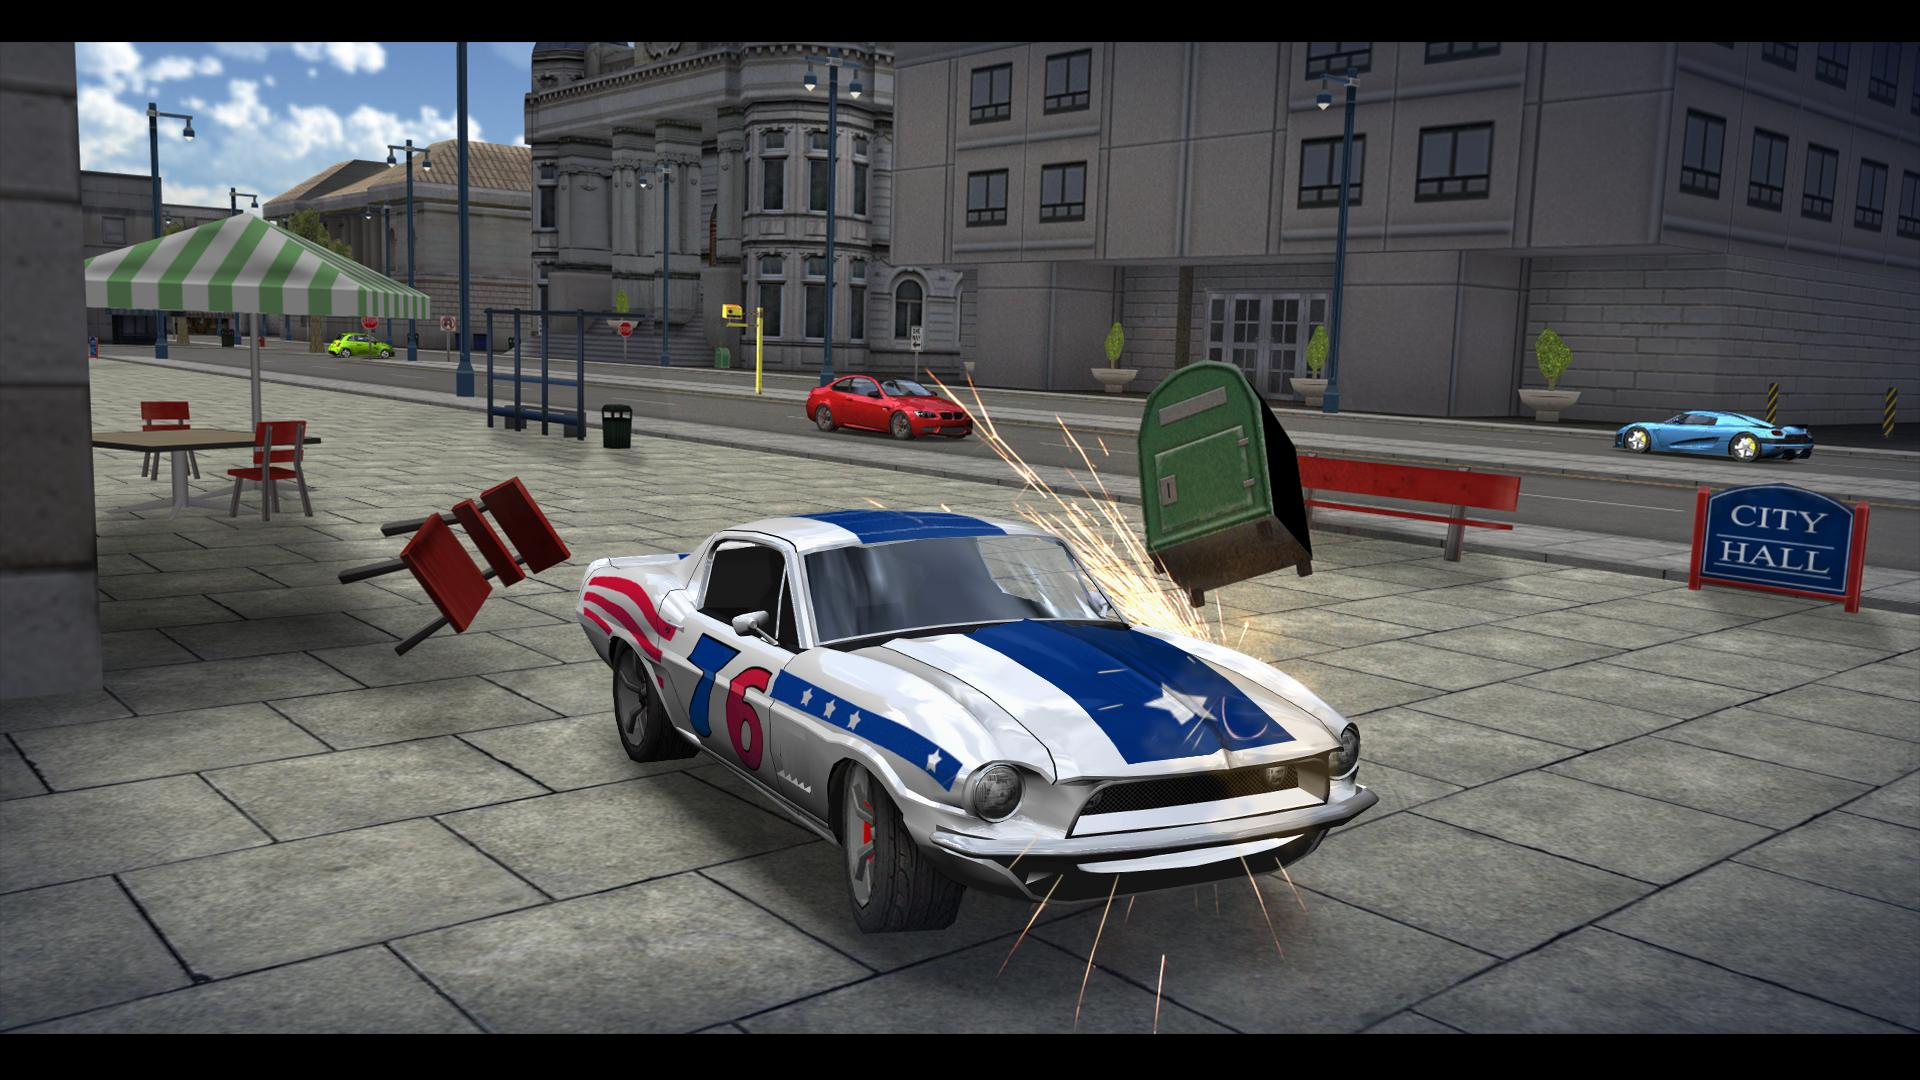 Car Driving Simulator: SF for Android - APK Download